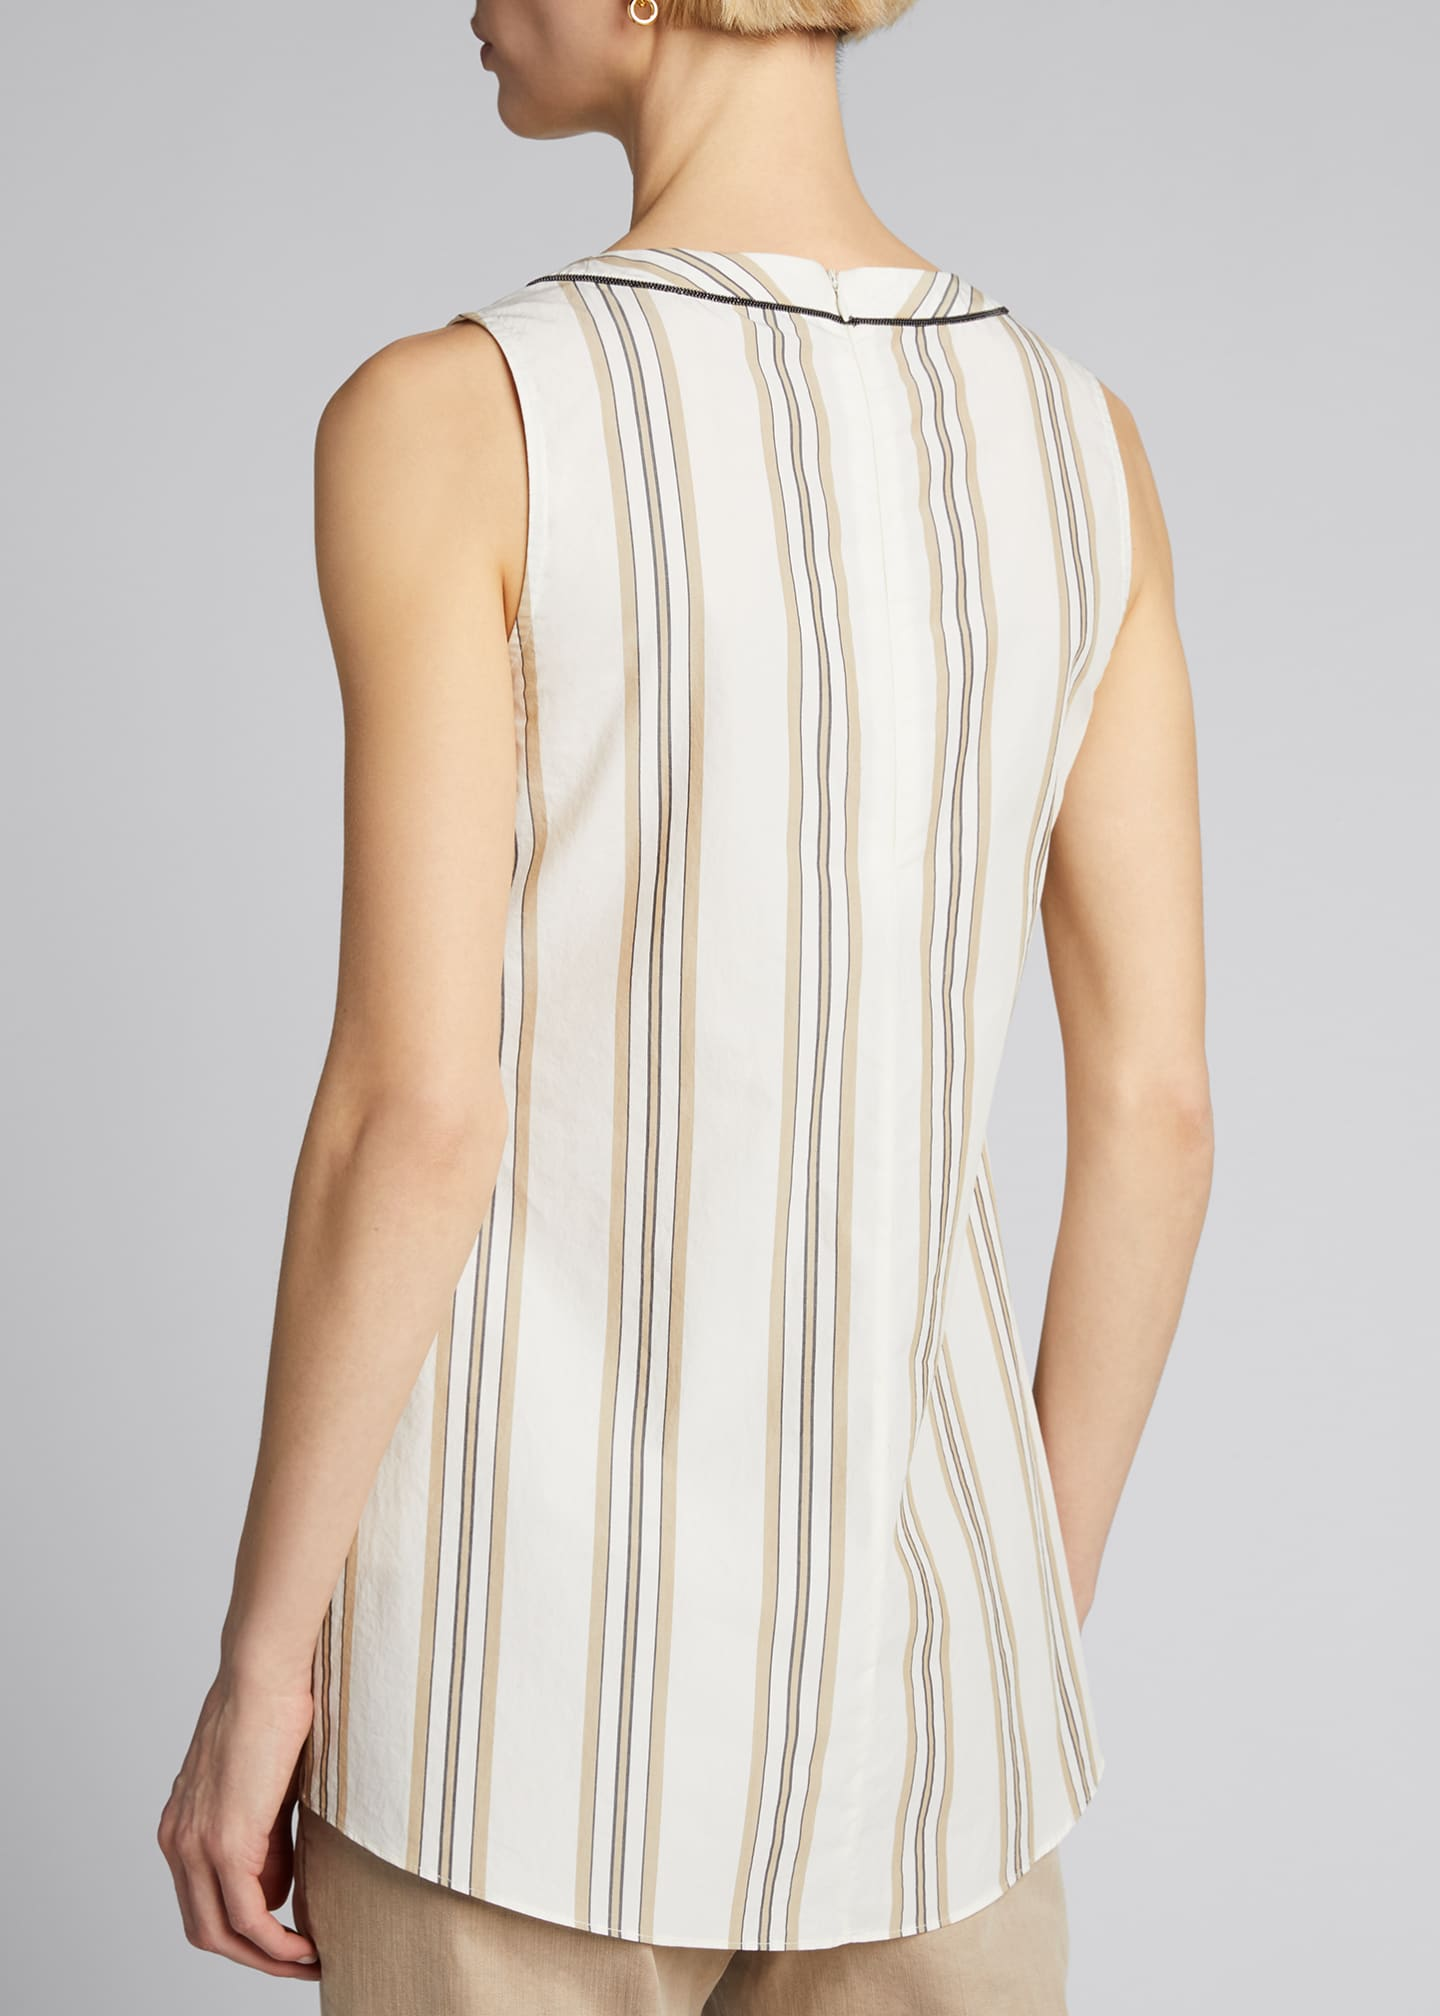 Image 2 of 5: Monili-Beaded Sleeveless Striped Poplin Top